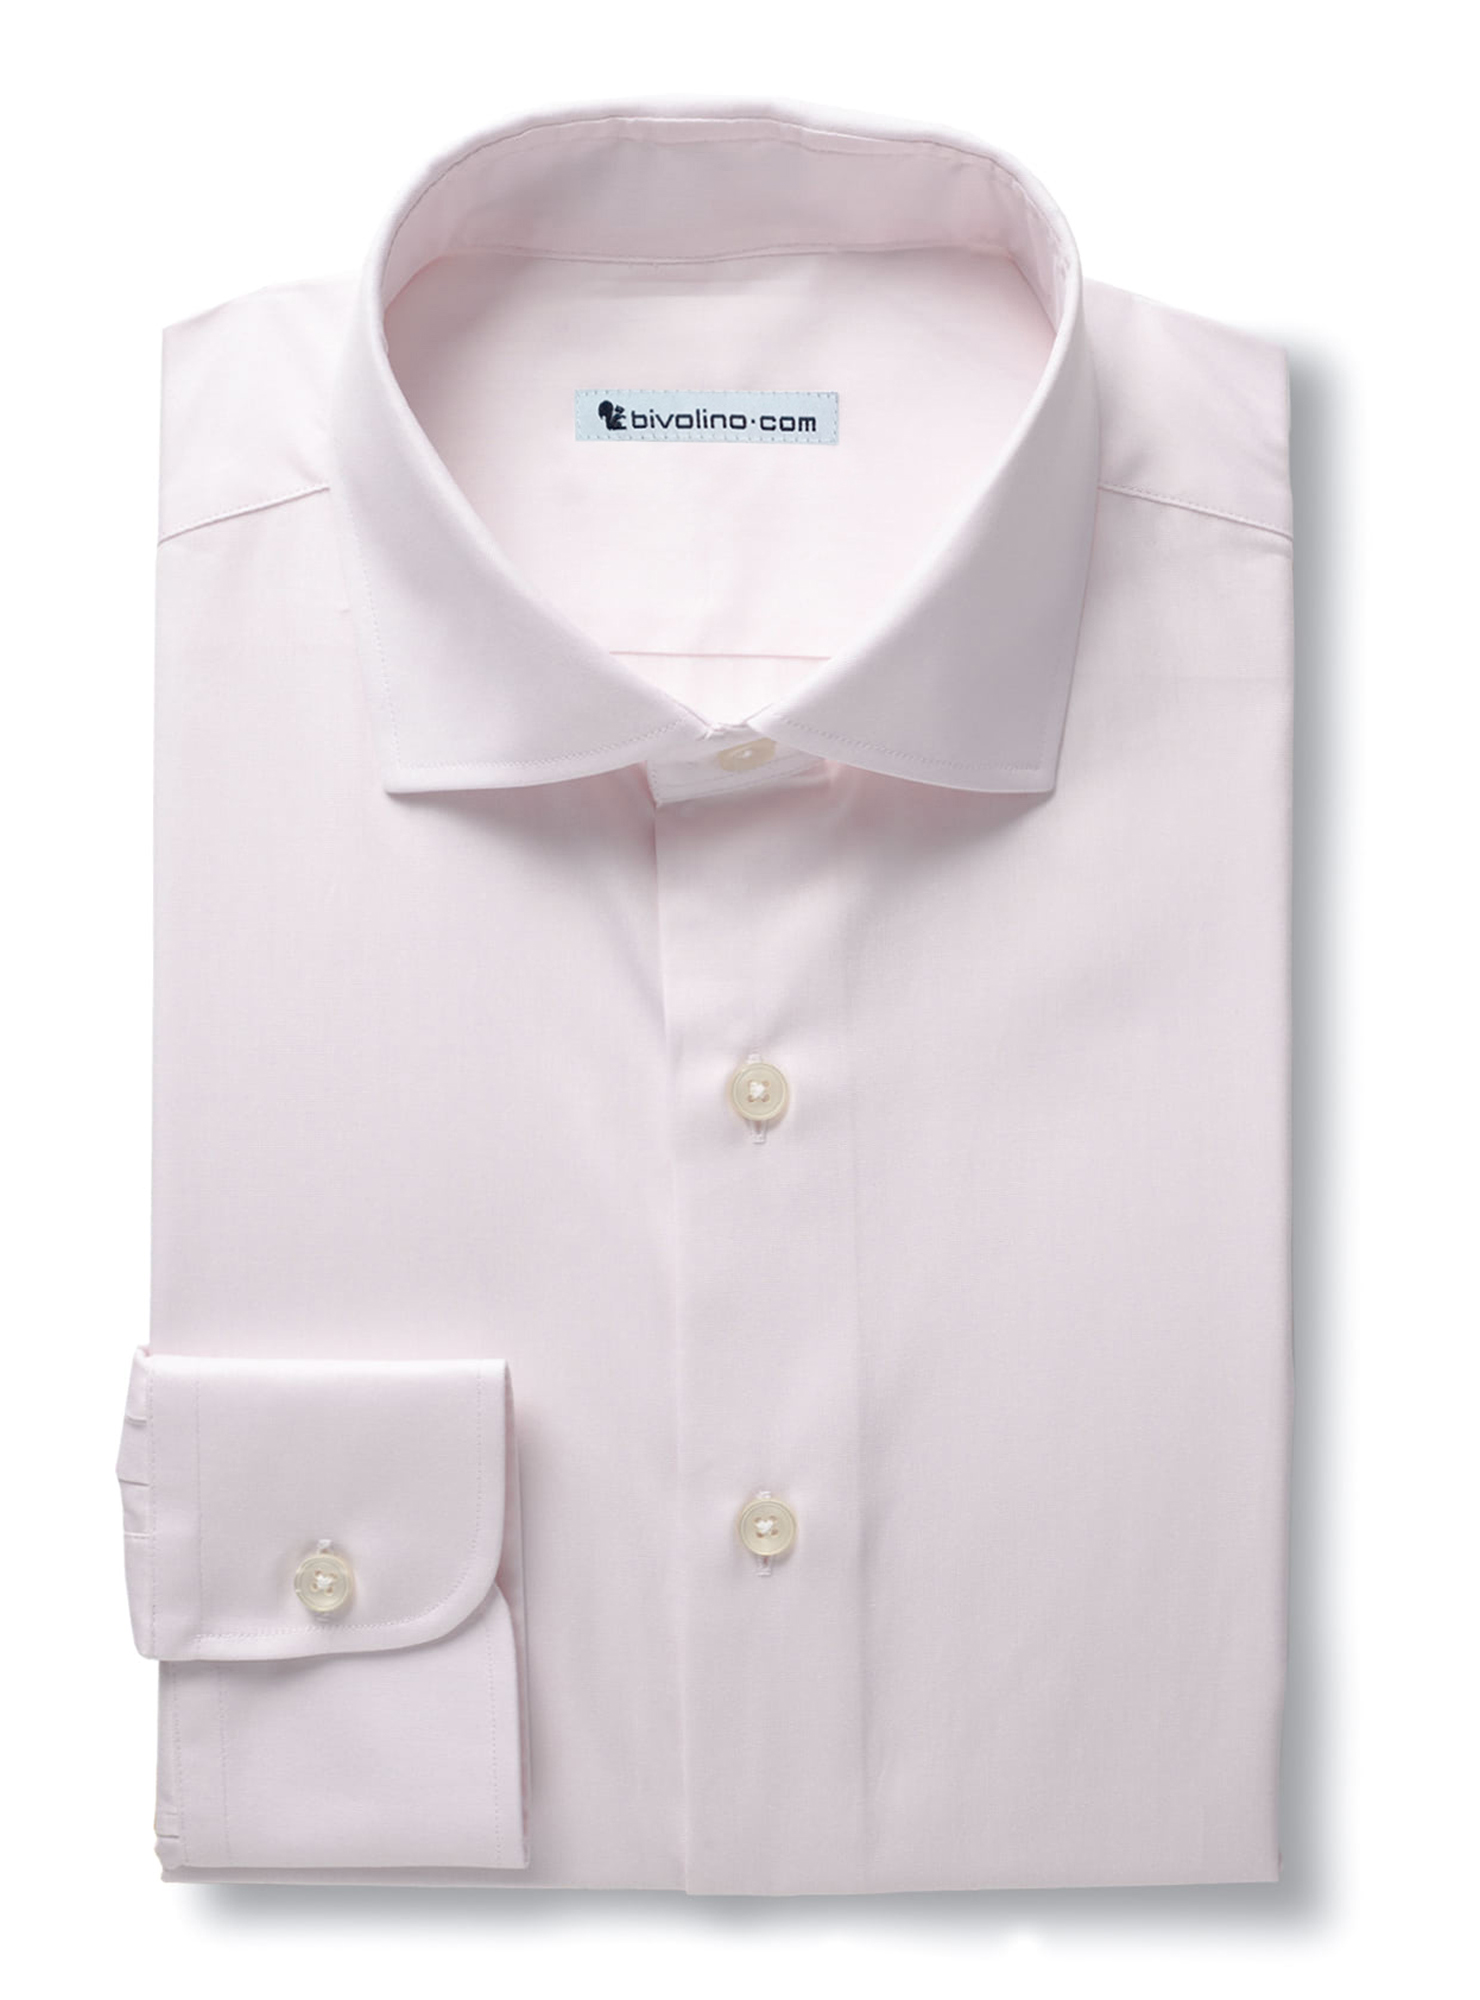 CANCILLIANO - Plain pink-ecru poplin shirt - CANCLI 2